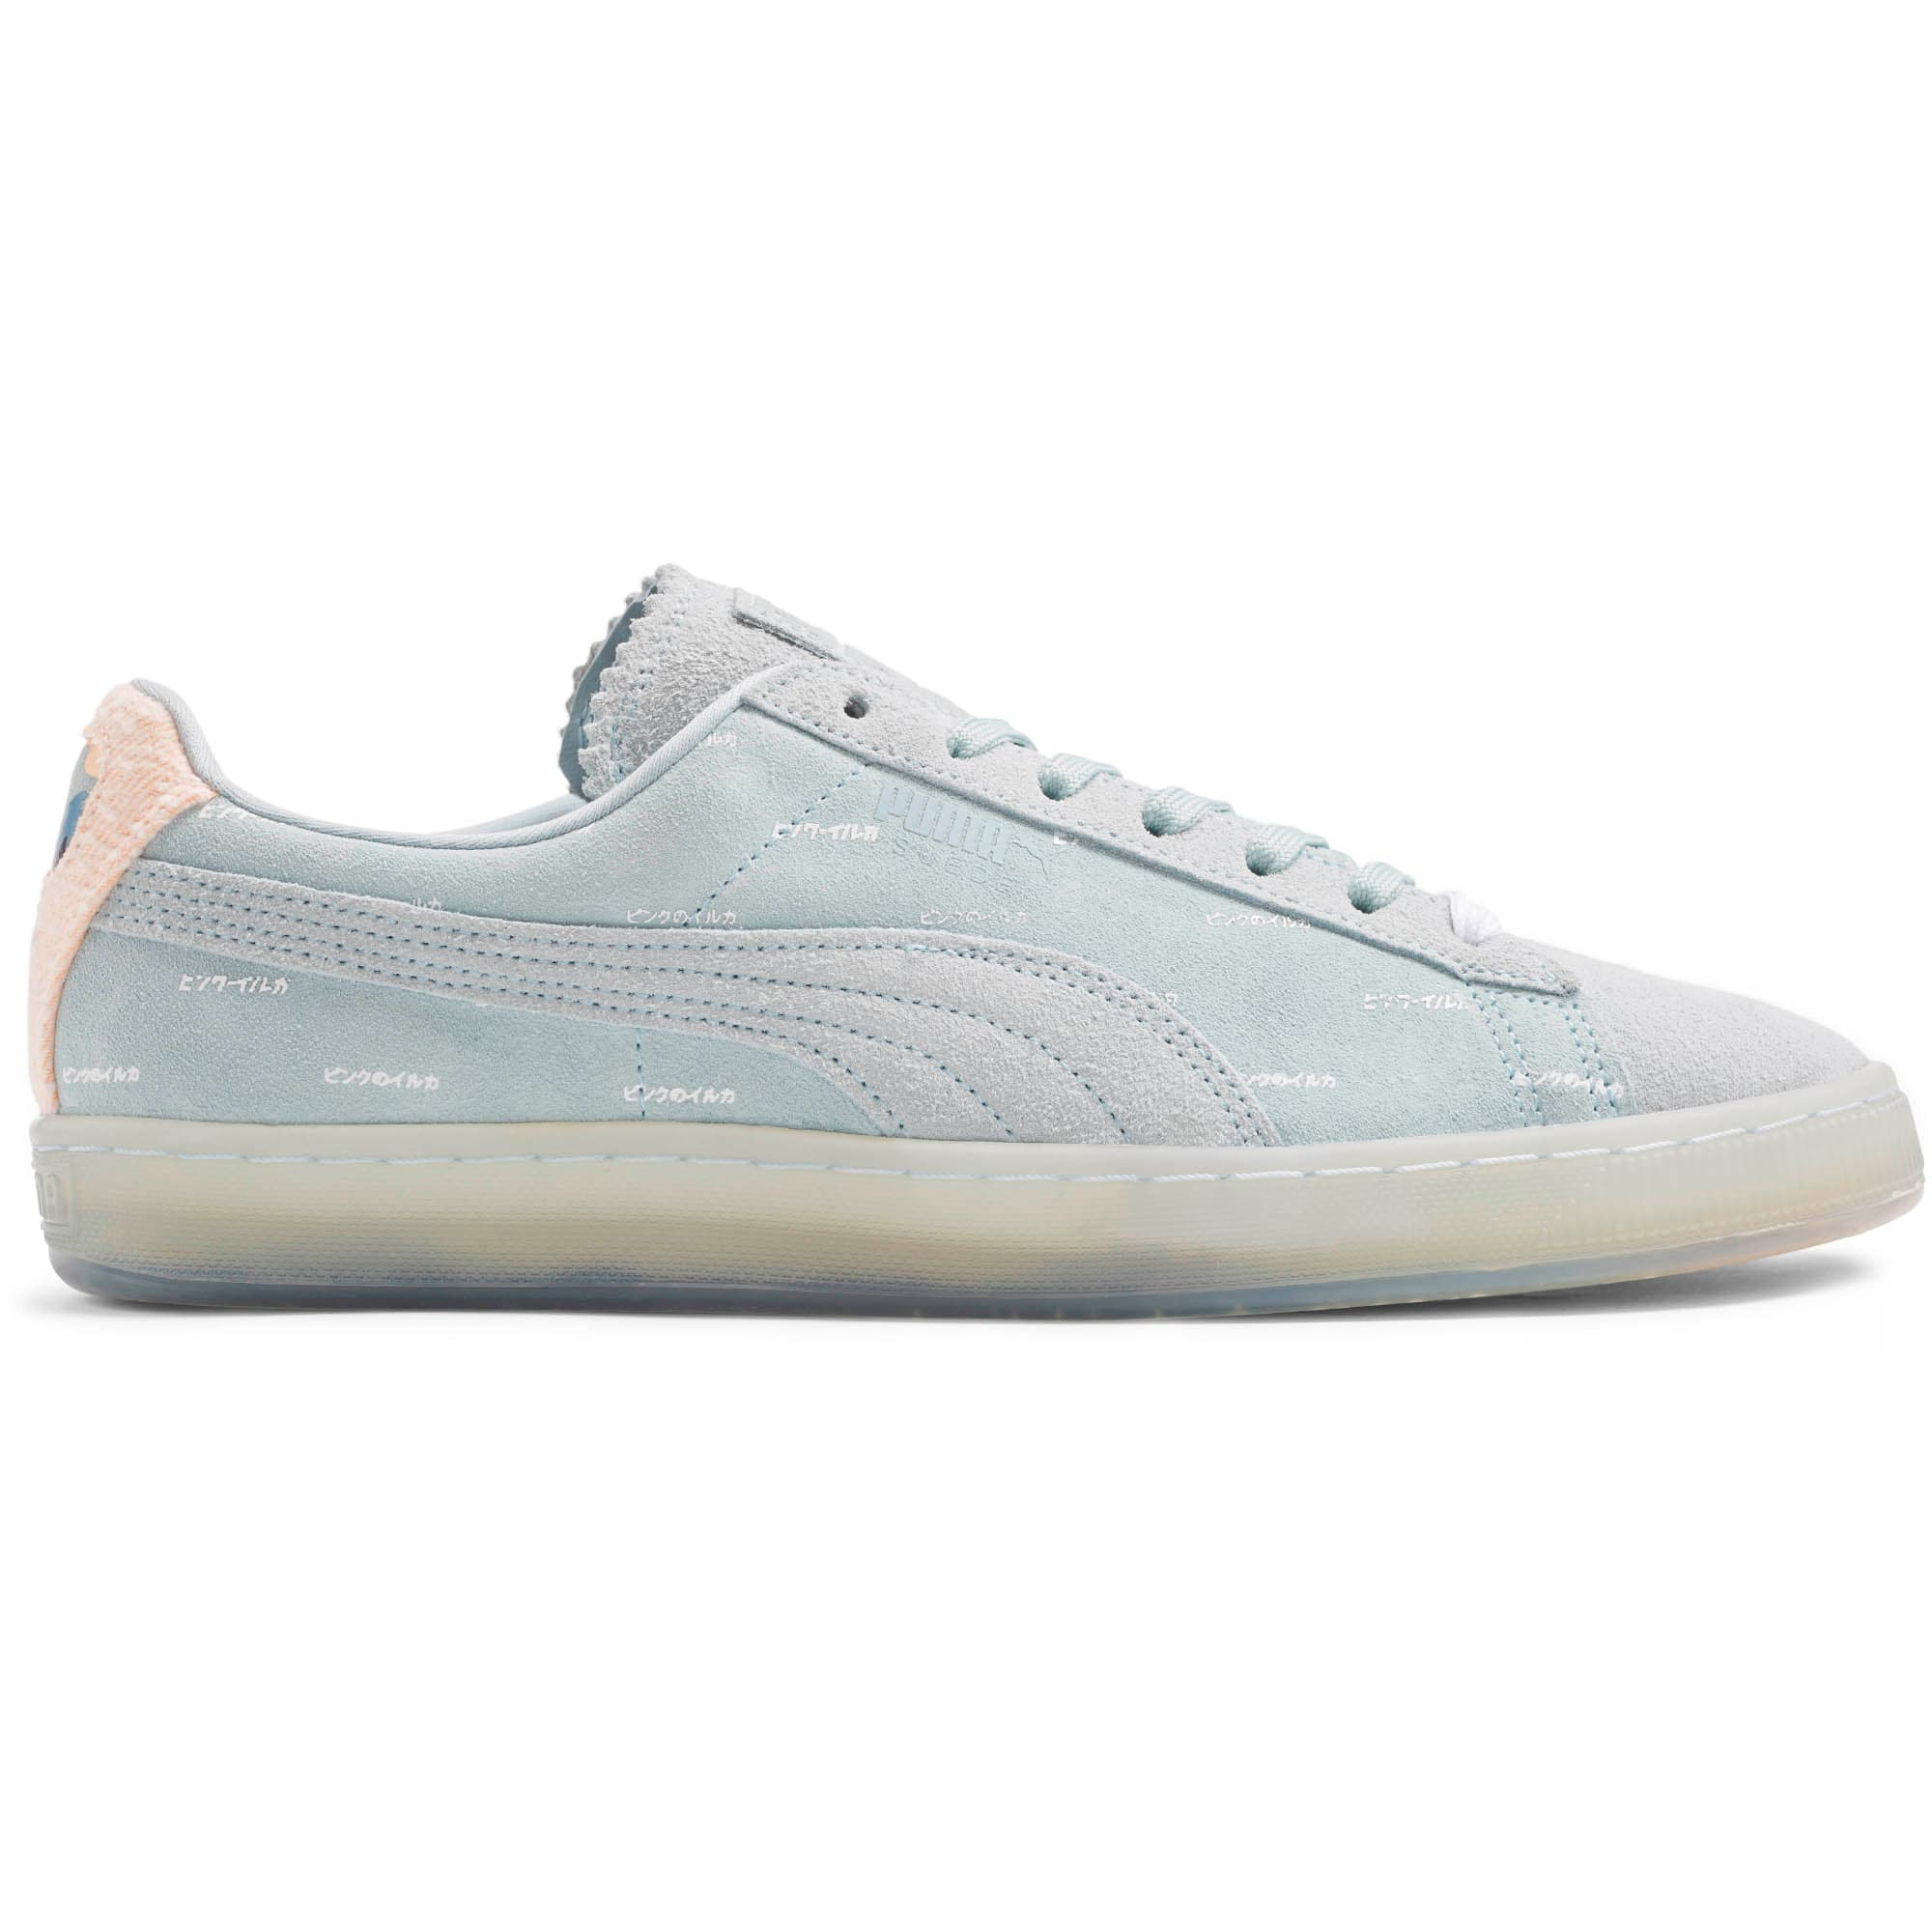 official photos 9d972 f5969 Suede V2 Pink Dolphin Men's Sneakers